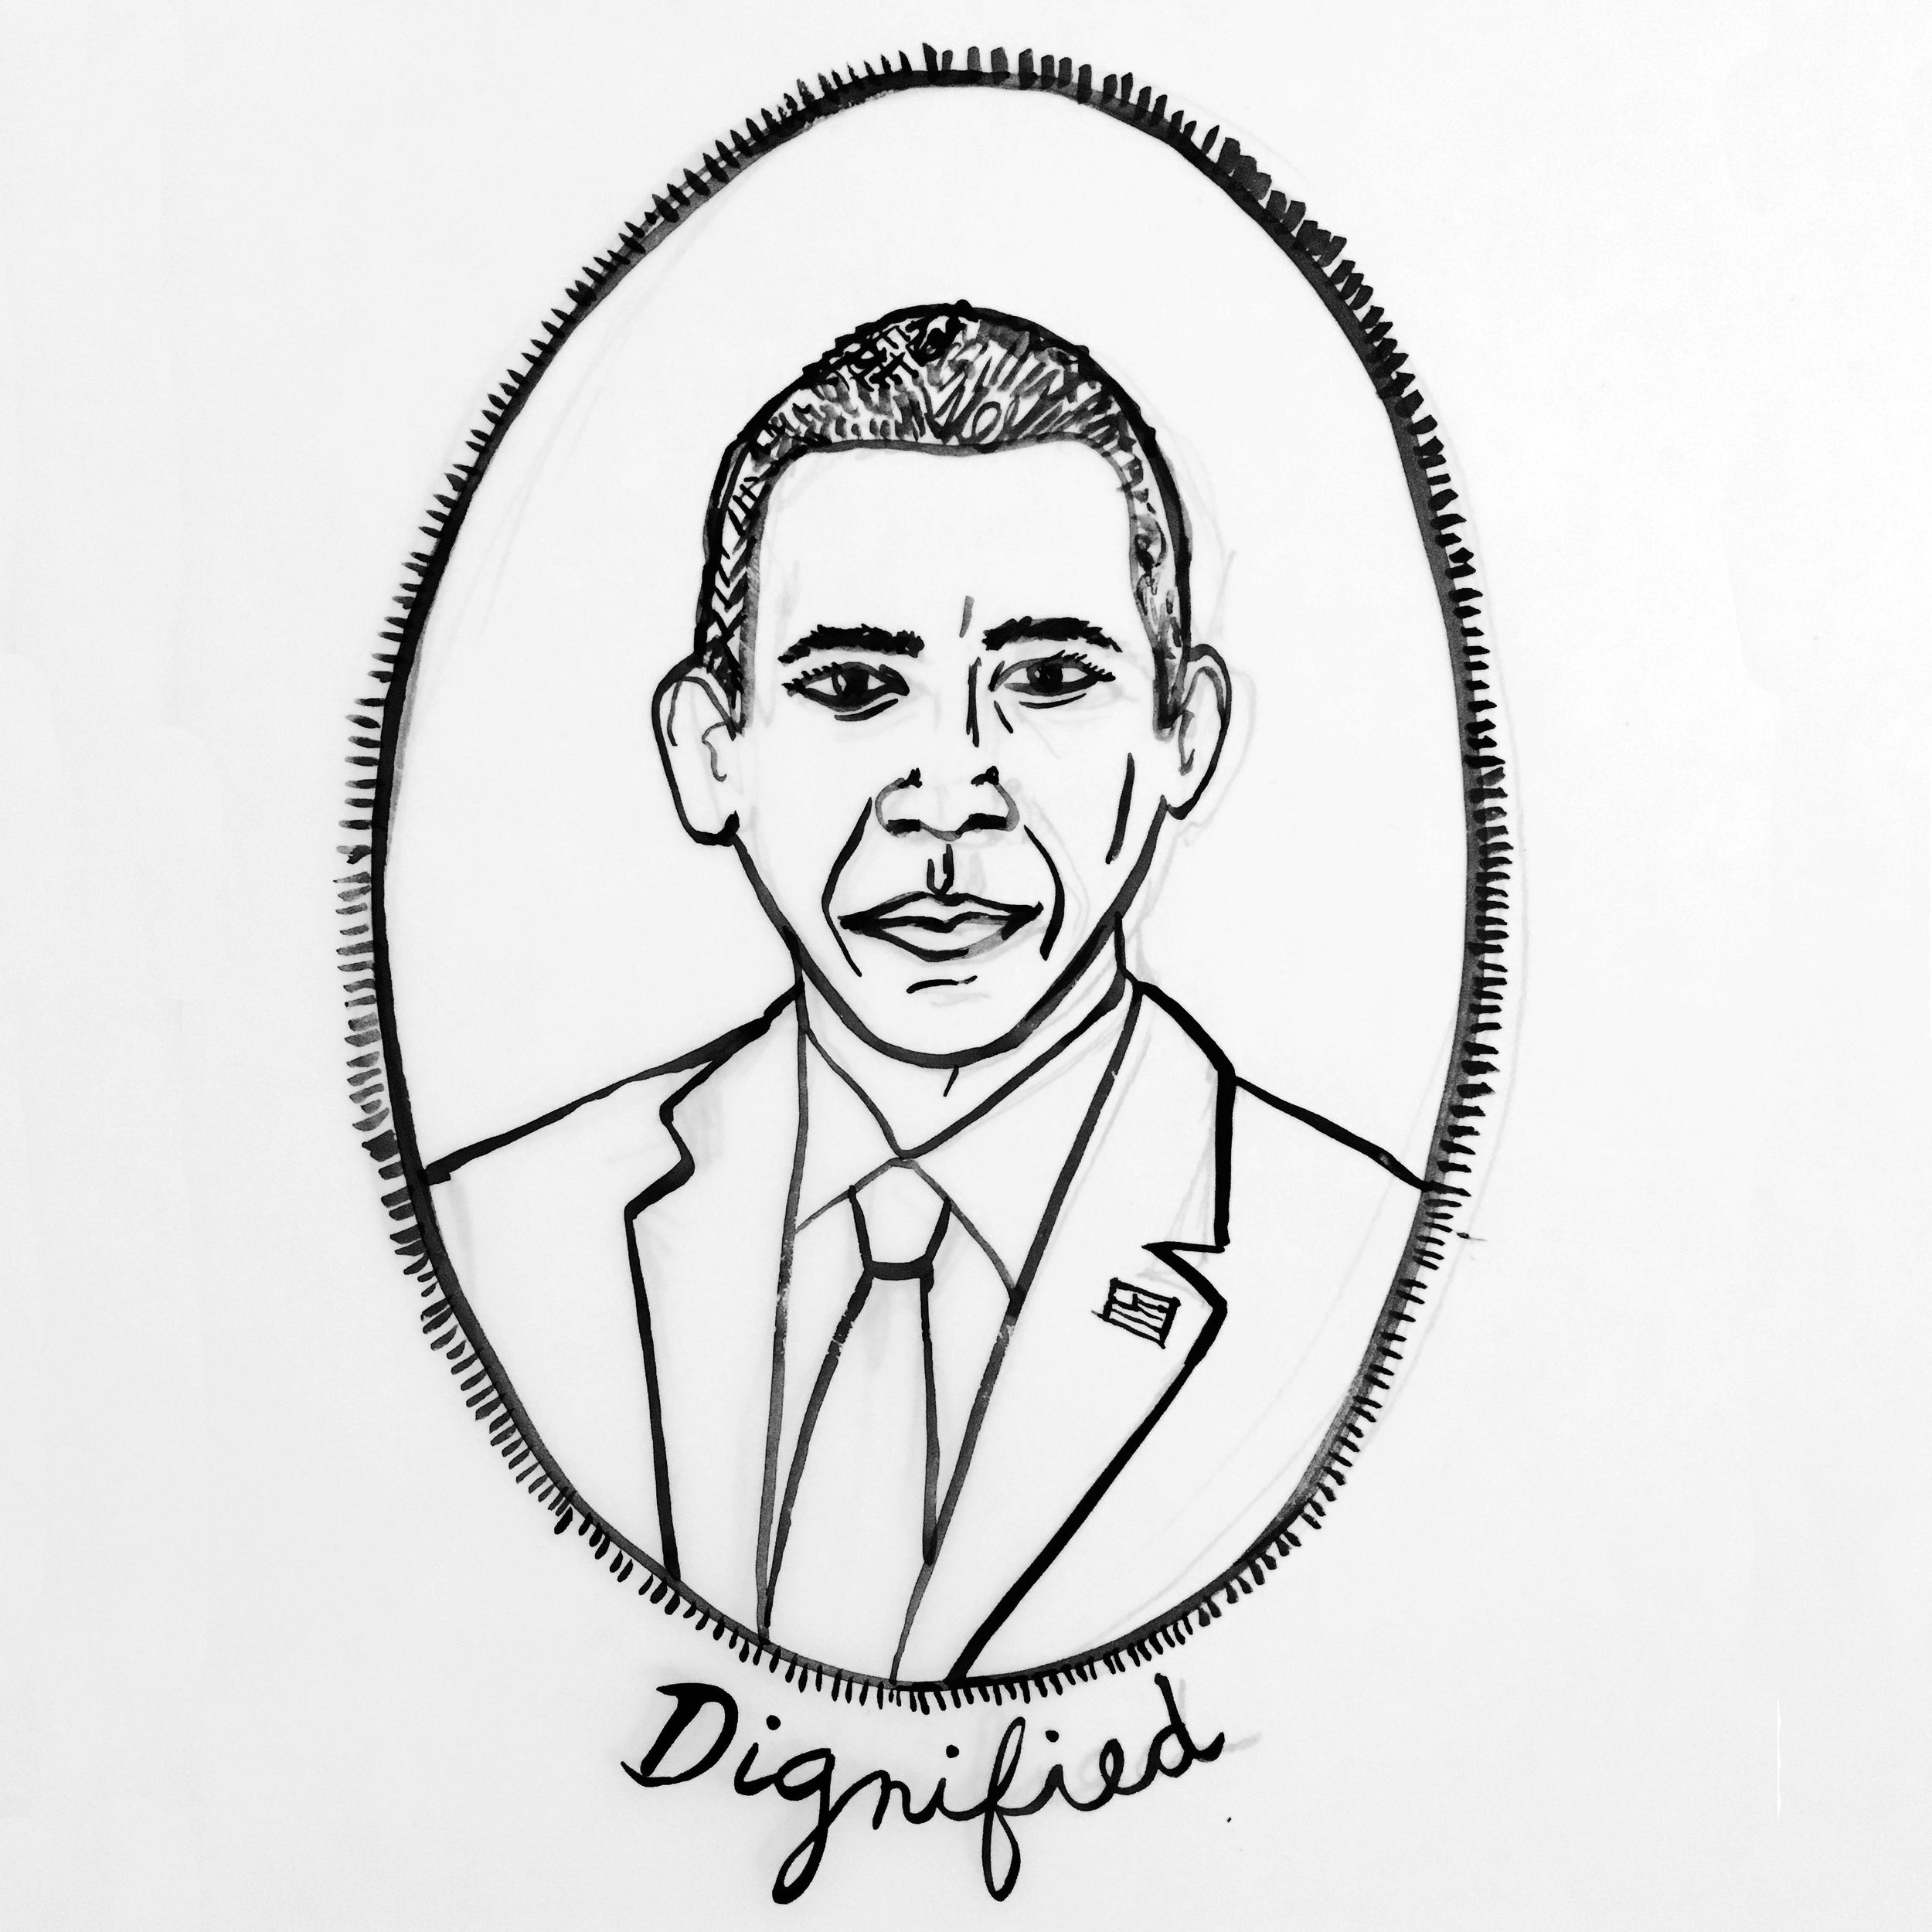 Obama - Dignified - Square.jpg